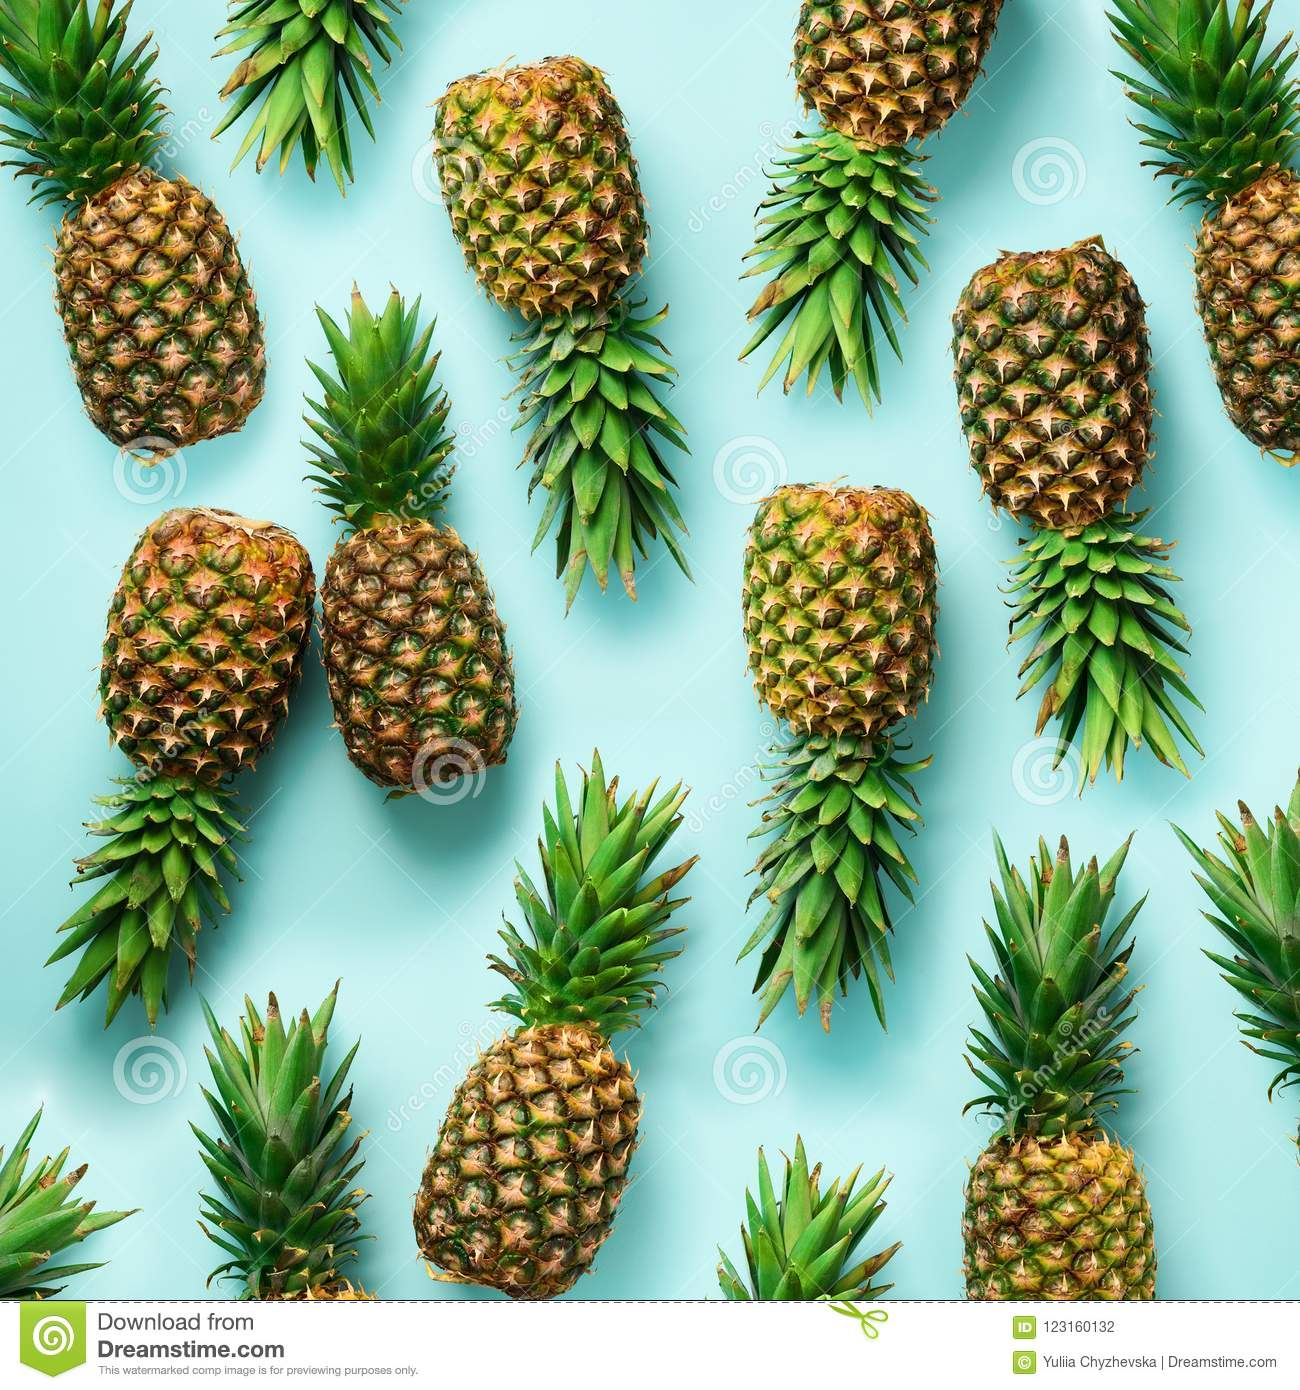 Square crop. Fresh pineapples on blue background. Top View. Pop art design, creative concept. Copy Space. Bright